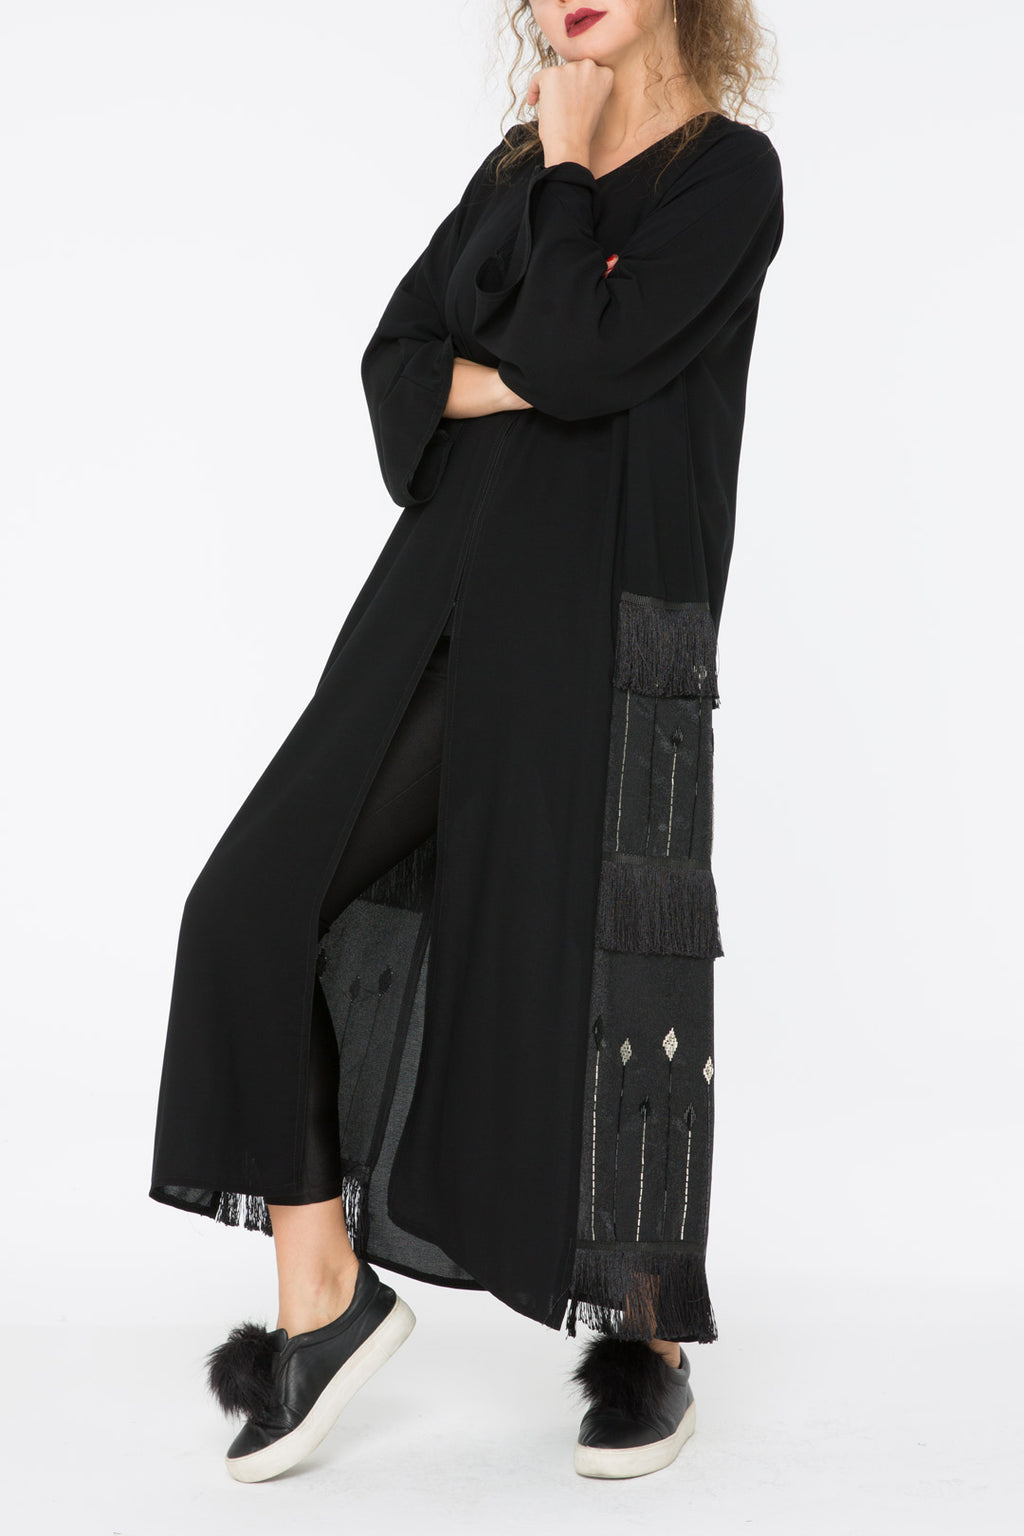 Detailed Black Panel Abaya